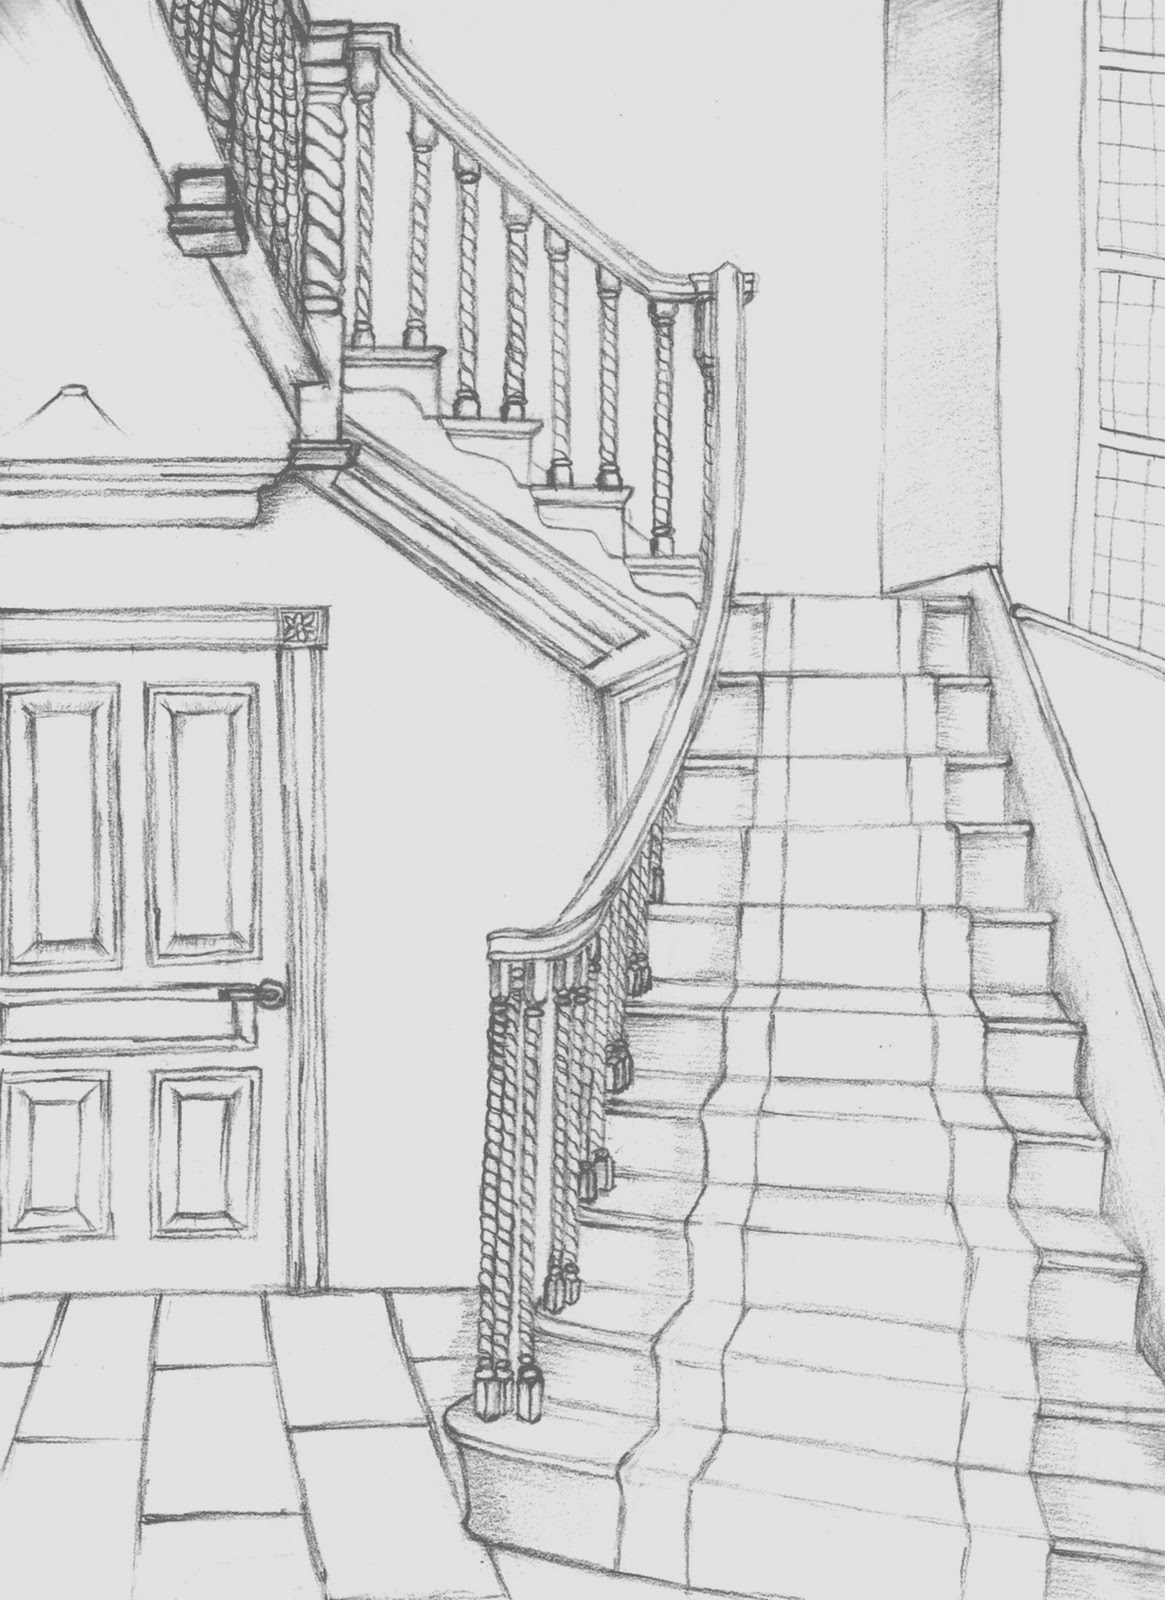 Inside House Drawing: Interior Designer: Drawings & Sketches